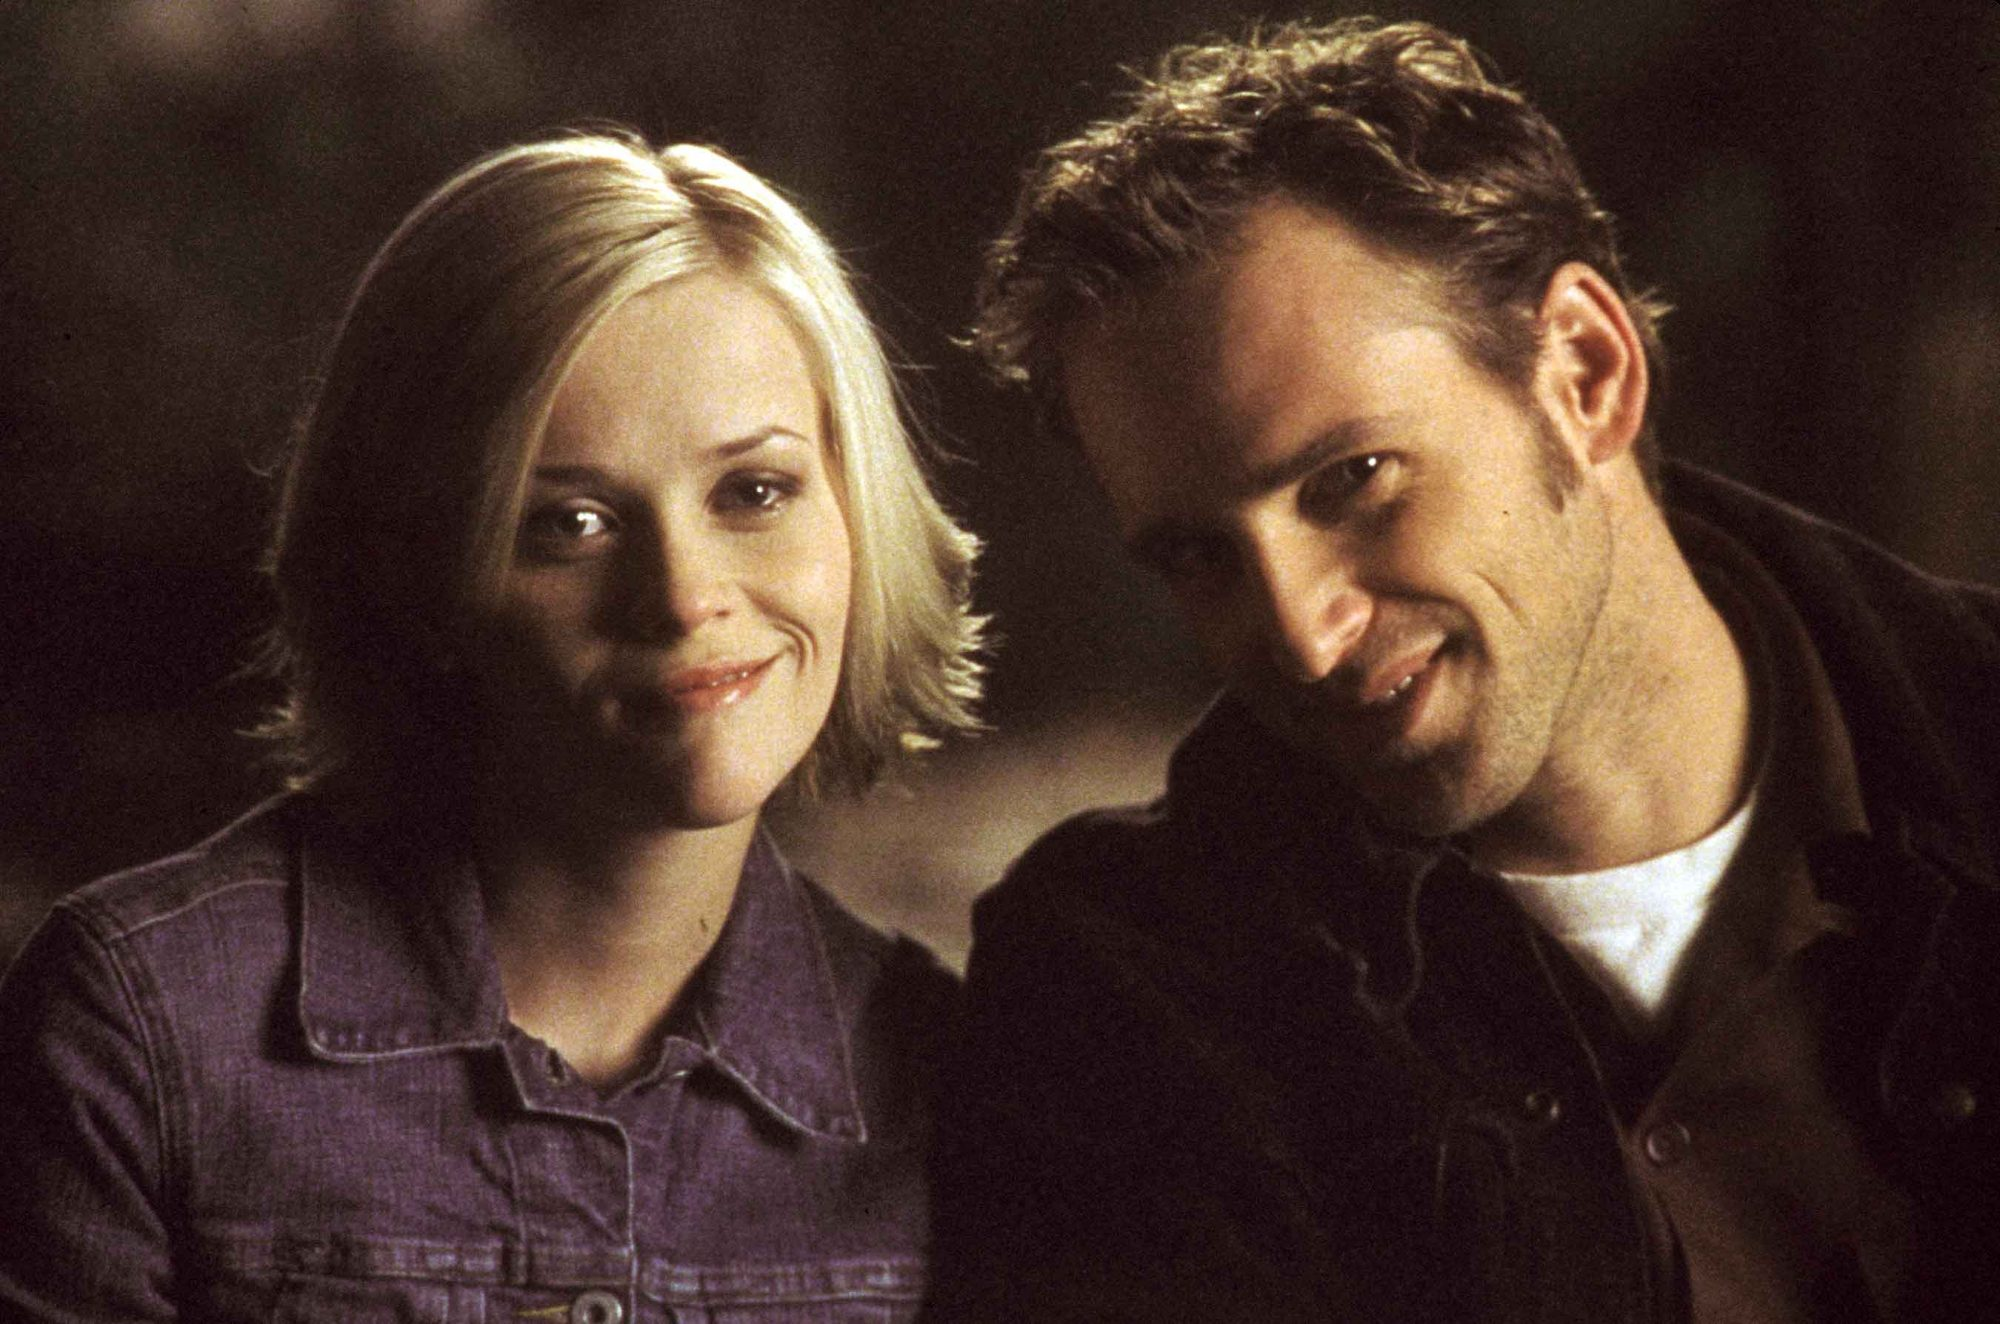 Sweet Home Alabama Sequel with Reese Witherspoon? Josh Lucas Says He'd 'Do It in a Second' josh-lucas-reese-witherspoon-sweet-home-alabama